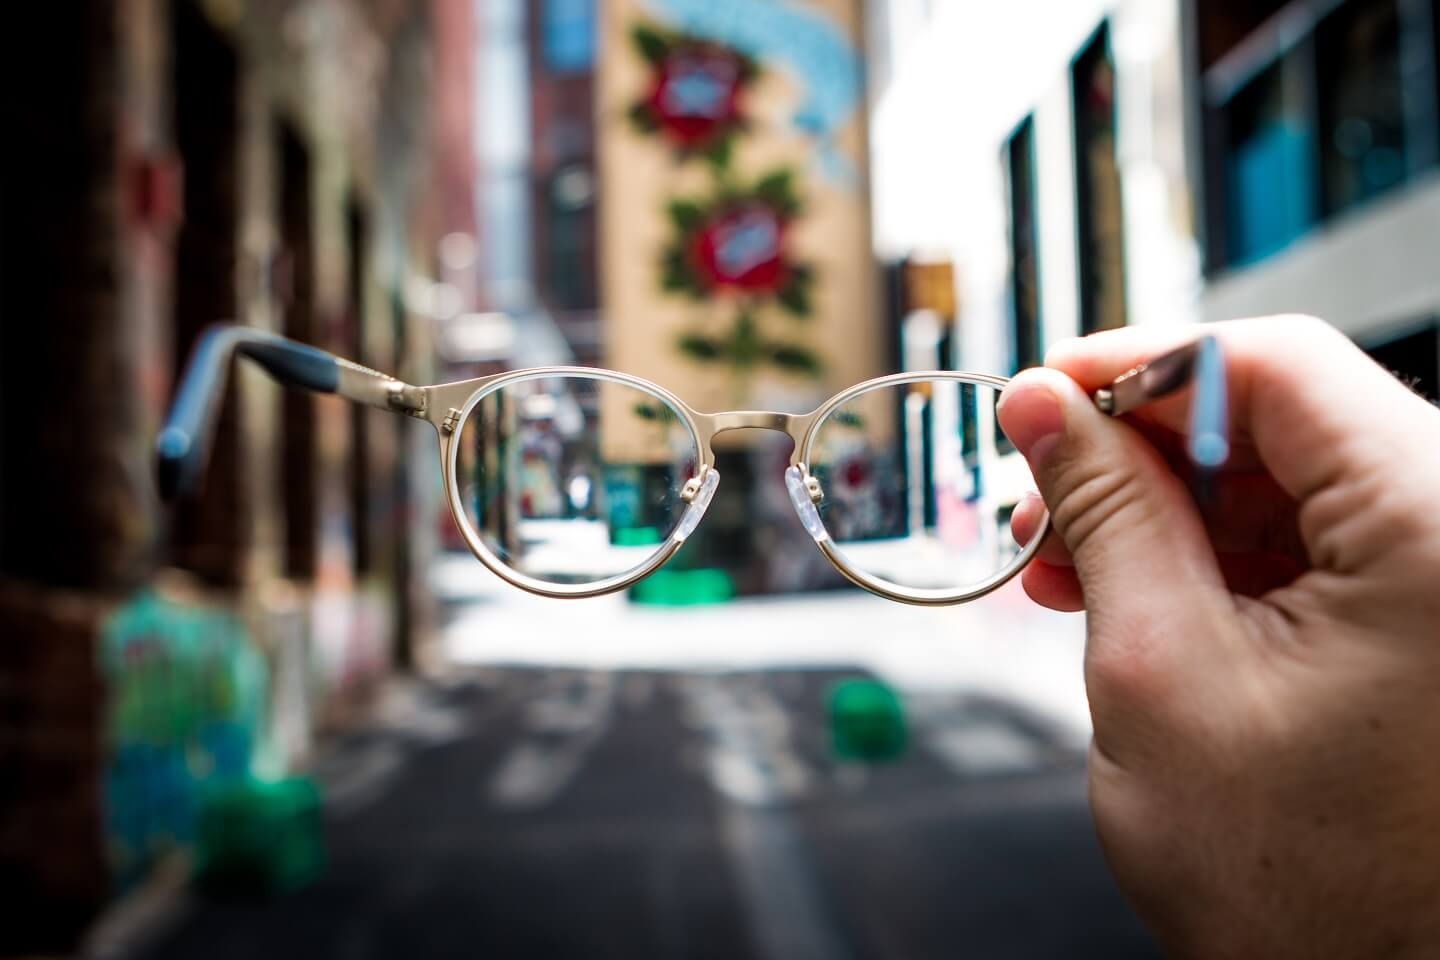 A hand holding up a pair of glasses standing on a empty road in the city